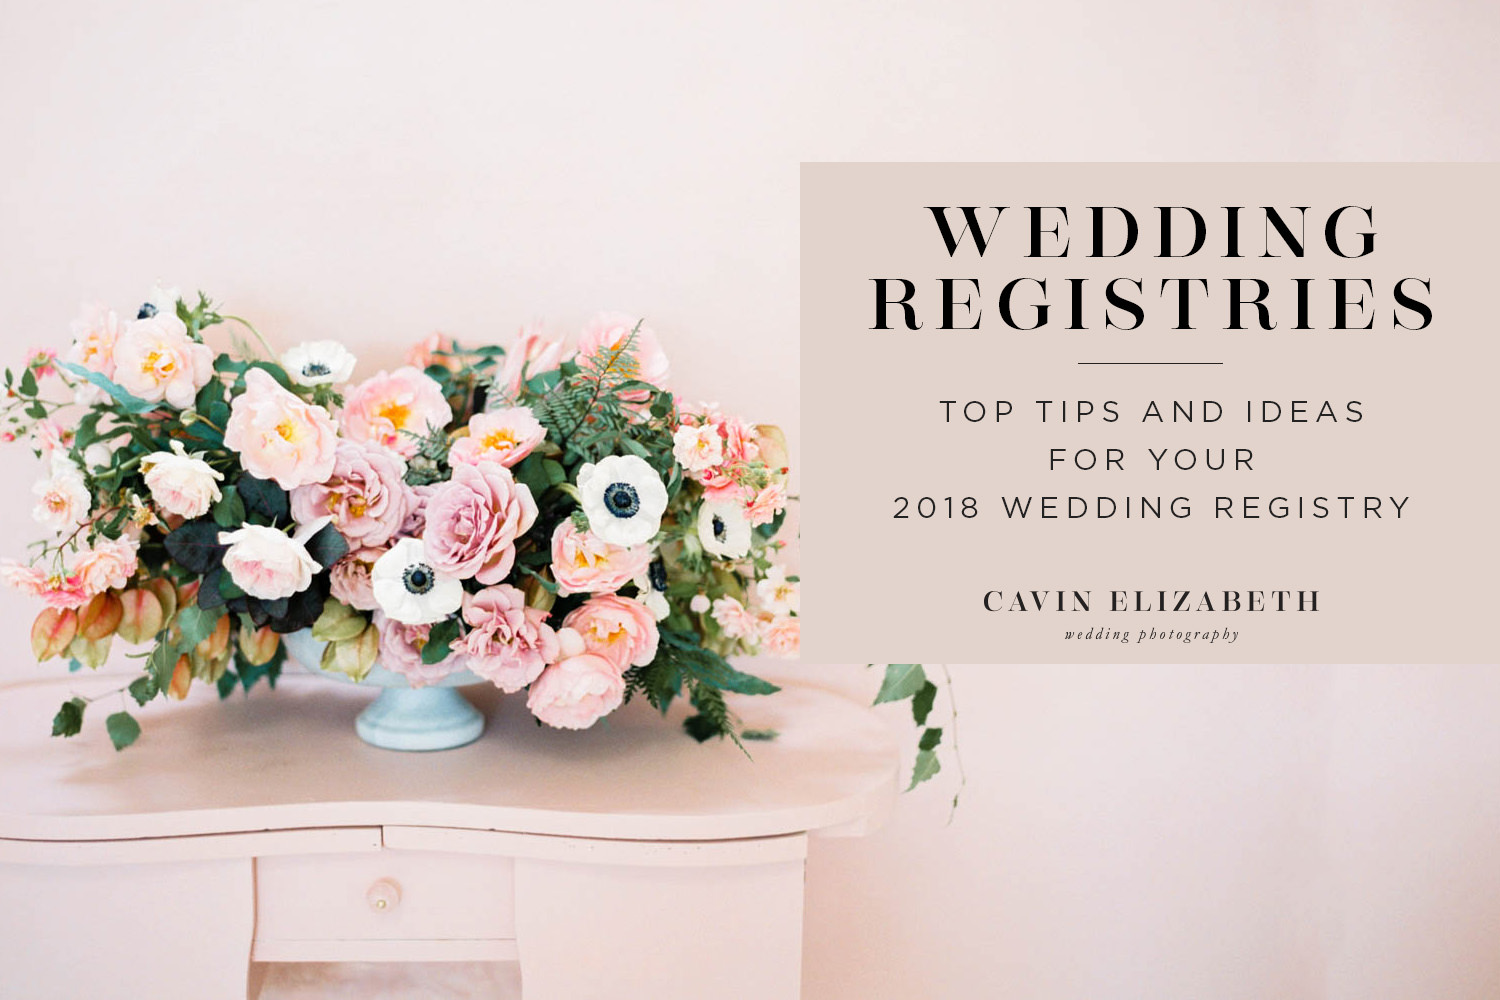 Wedding registry ideas and tips for 2018 weddings top wedding registry ideas and tips for 2018 weddings junglespirit